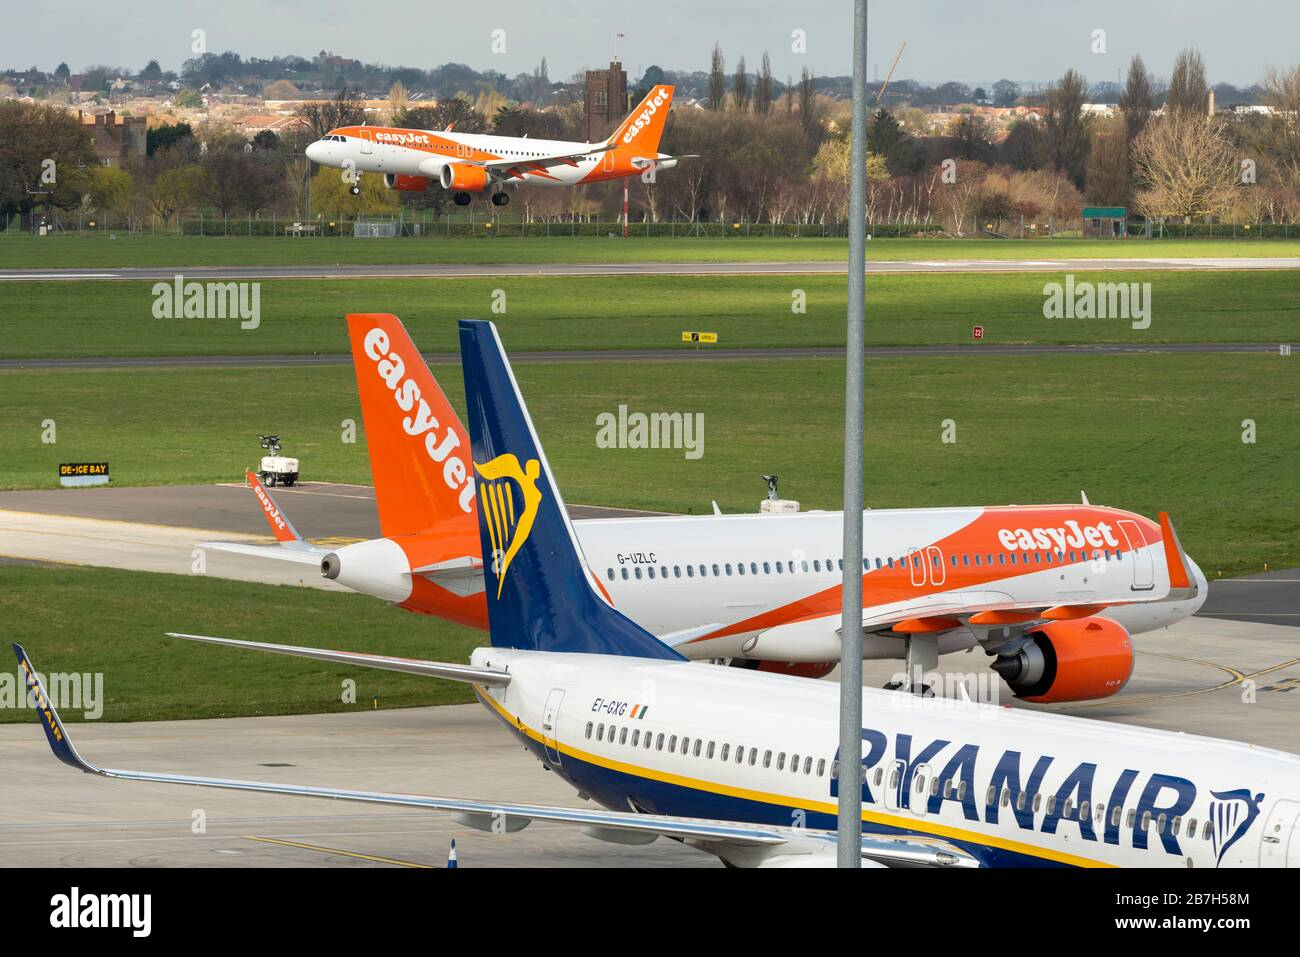 london-southend-airport-essex-uk-16th-mar-2020-easyjet-have-cancelled-all-of-their-scheduled-services-to-and-from-spain-with-the-exception-of-a-handful-of-repatriation-flights-the-final-arrivals-from-alicante-and-malaga-have-arrived-at-london-southend-airport-with-an-arrival-due-from-barcelona-in-the-evening-the-aircraft-will-likely-be-stored-at-the-airport-until-flights-recommence-southend-is-also-a-base-for-ryanair-which-is-also-seeing-a-reduction-in-operations-and-has-lost-its-flybe-routes-ezy7436-from-malaga-landing-2B7H58M.jpg